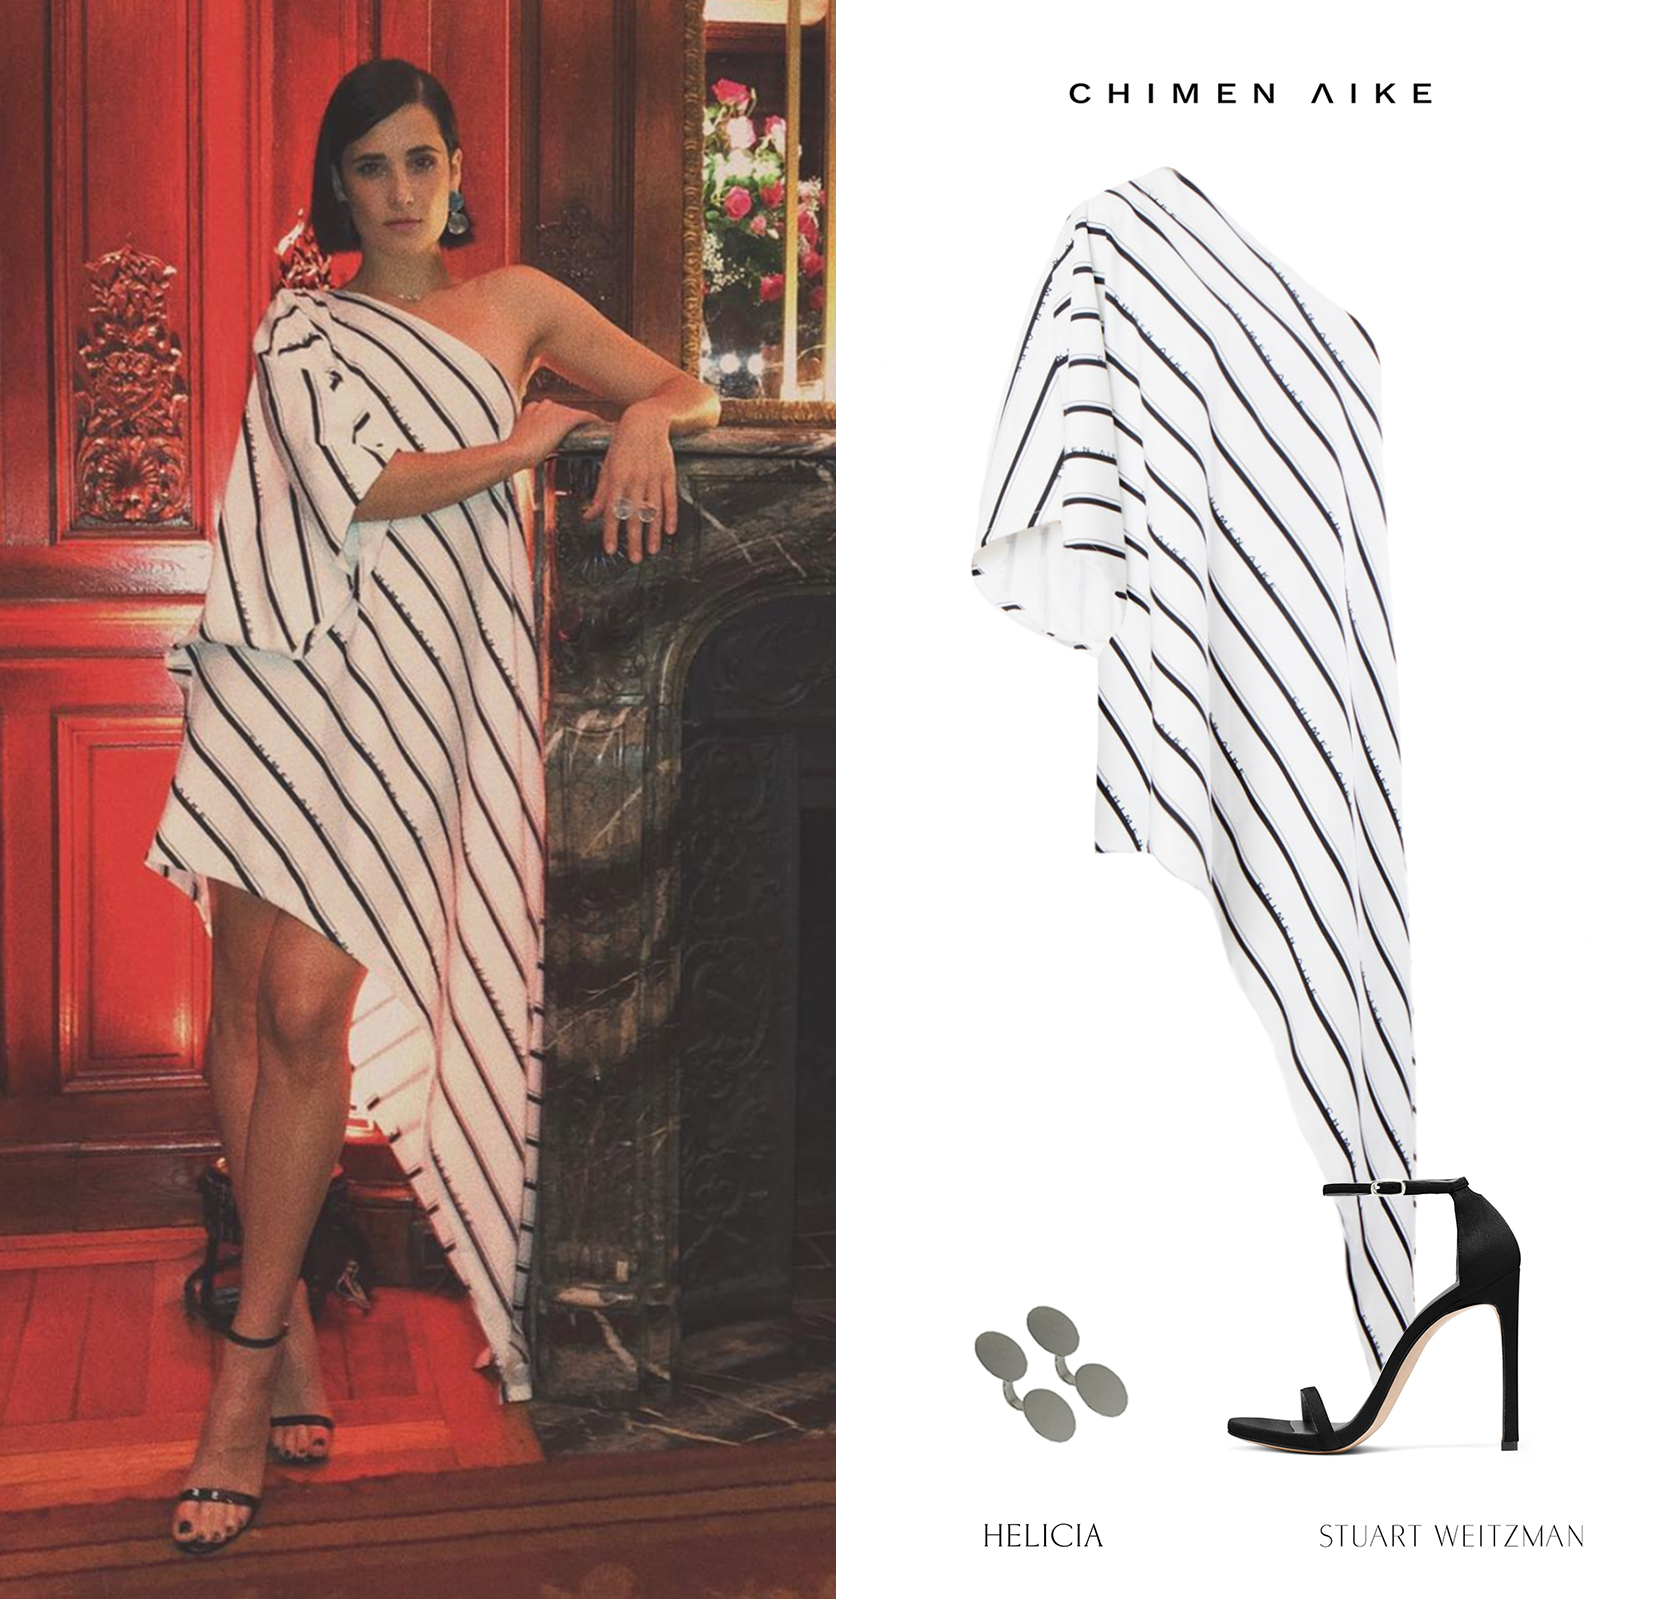 Florencia_Flor_Torrente_Marie_Claire_Lanzamiento_Buenos_Aires_Vestido_Parisier_Logo_Chimen_Aike_un_hombro_dress_zapatos_sandalias_nudist_sandals_negros_black_helicia_aros_satelite_earrings.jpg